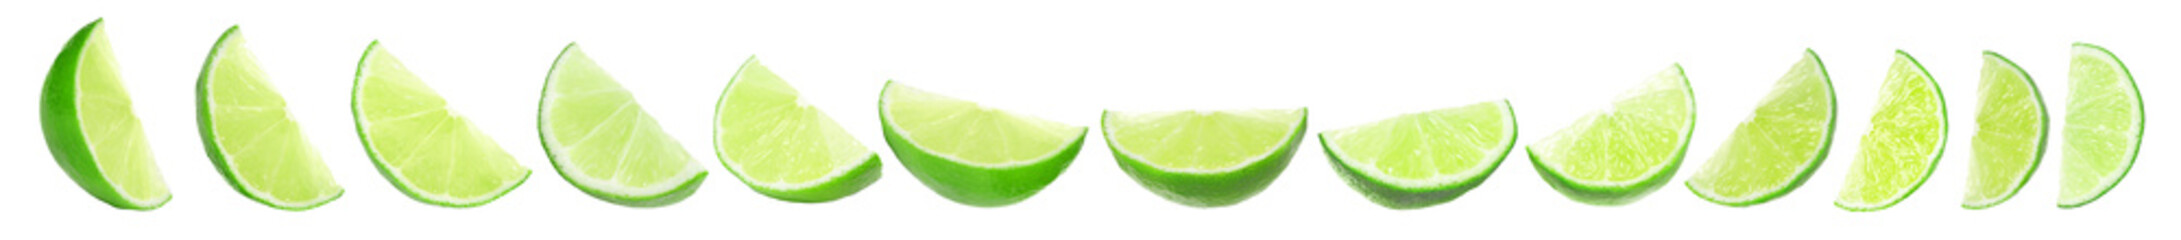 Set of juicy ripe limes on white background. Banner design